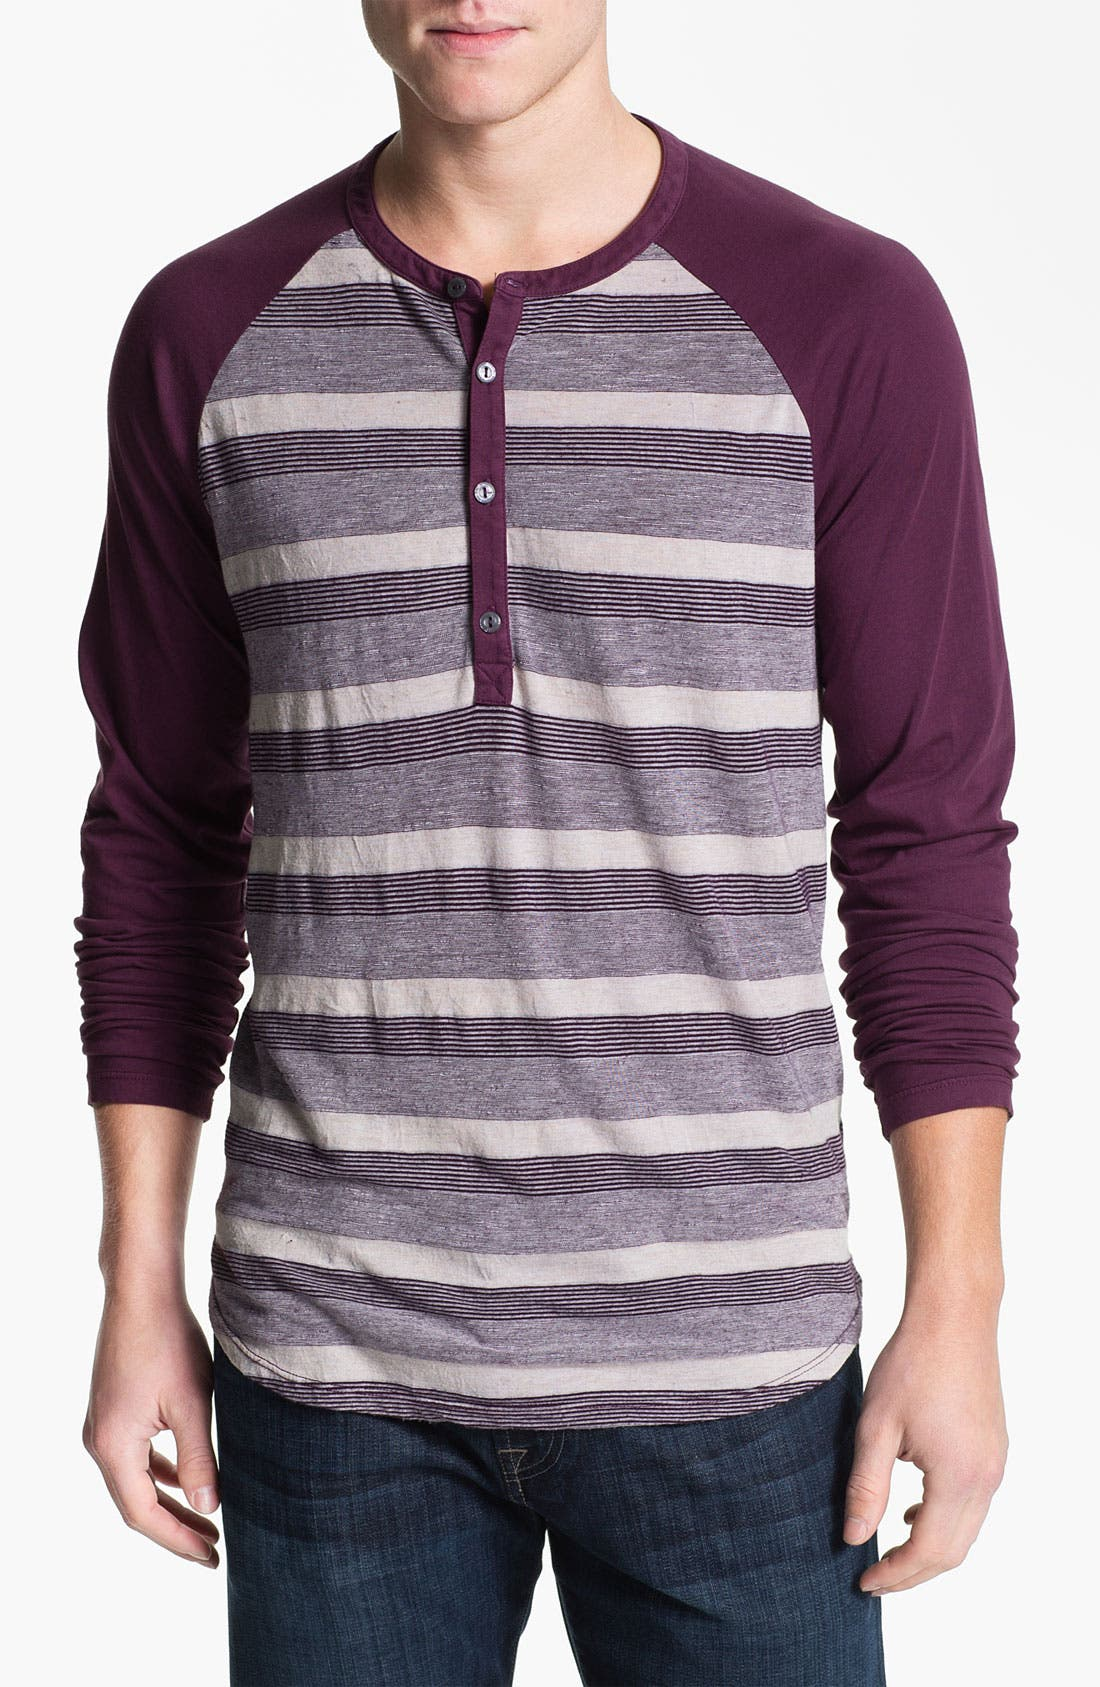 Alternate Image 1 Selected - Splendid Mills 'Raf' Stripe Henley